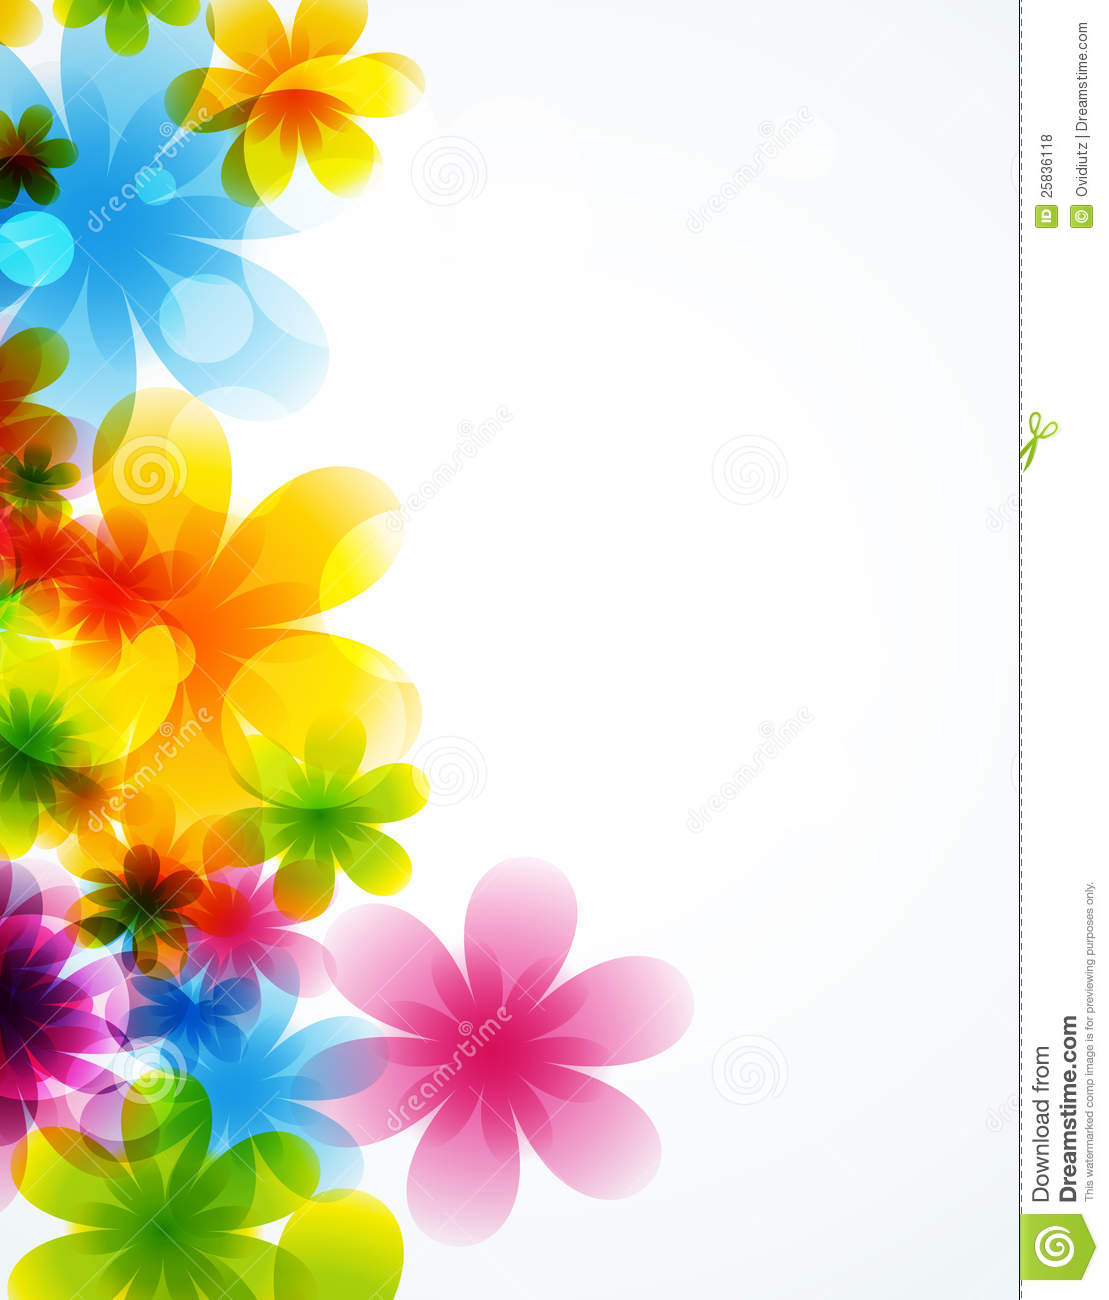 Royalty Free Stock Photos: Flower Vector Background